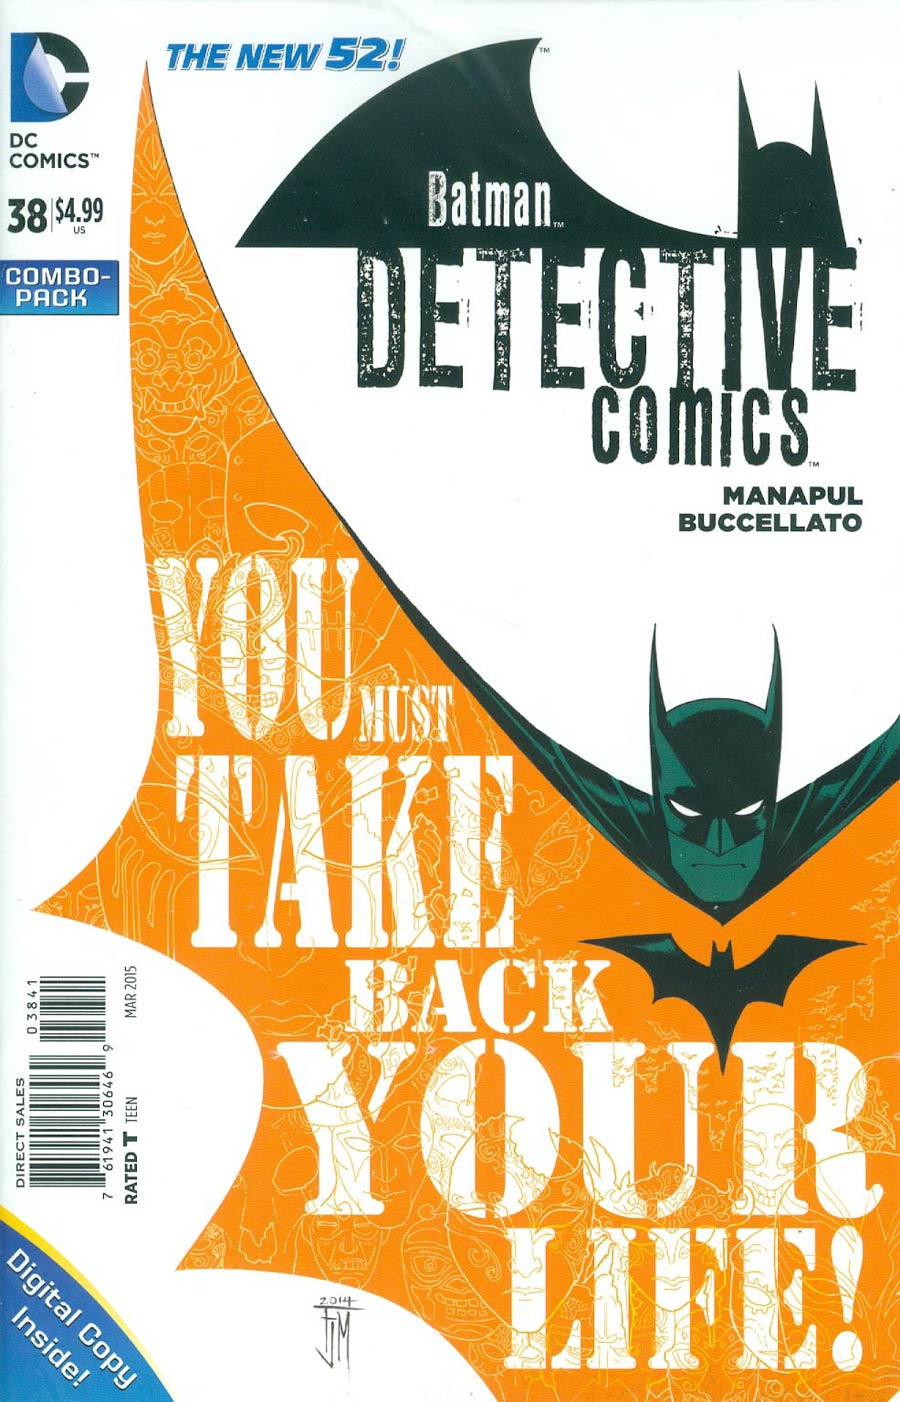 Detective Comics Vol 2 #38 Cover C Combo Pack With Polybag